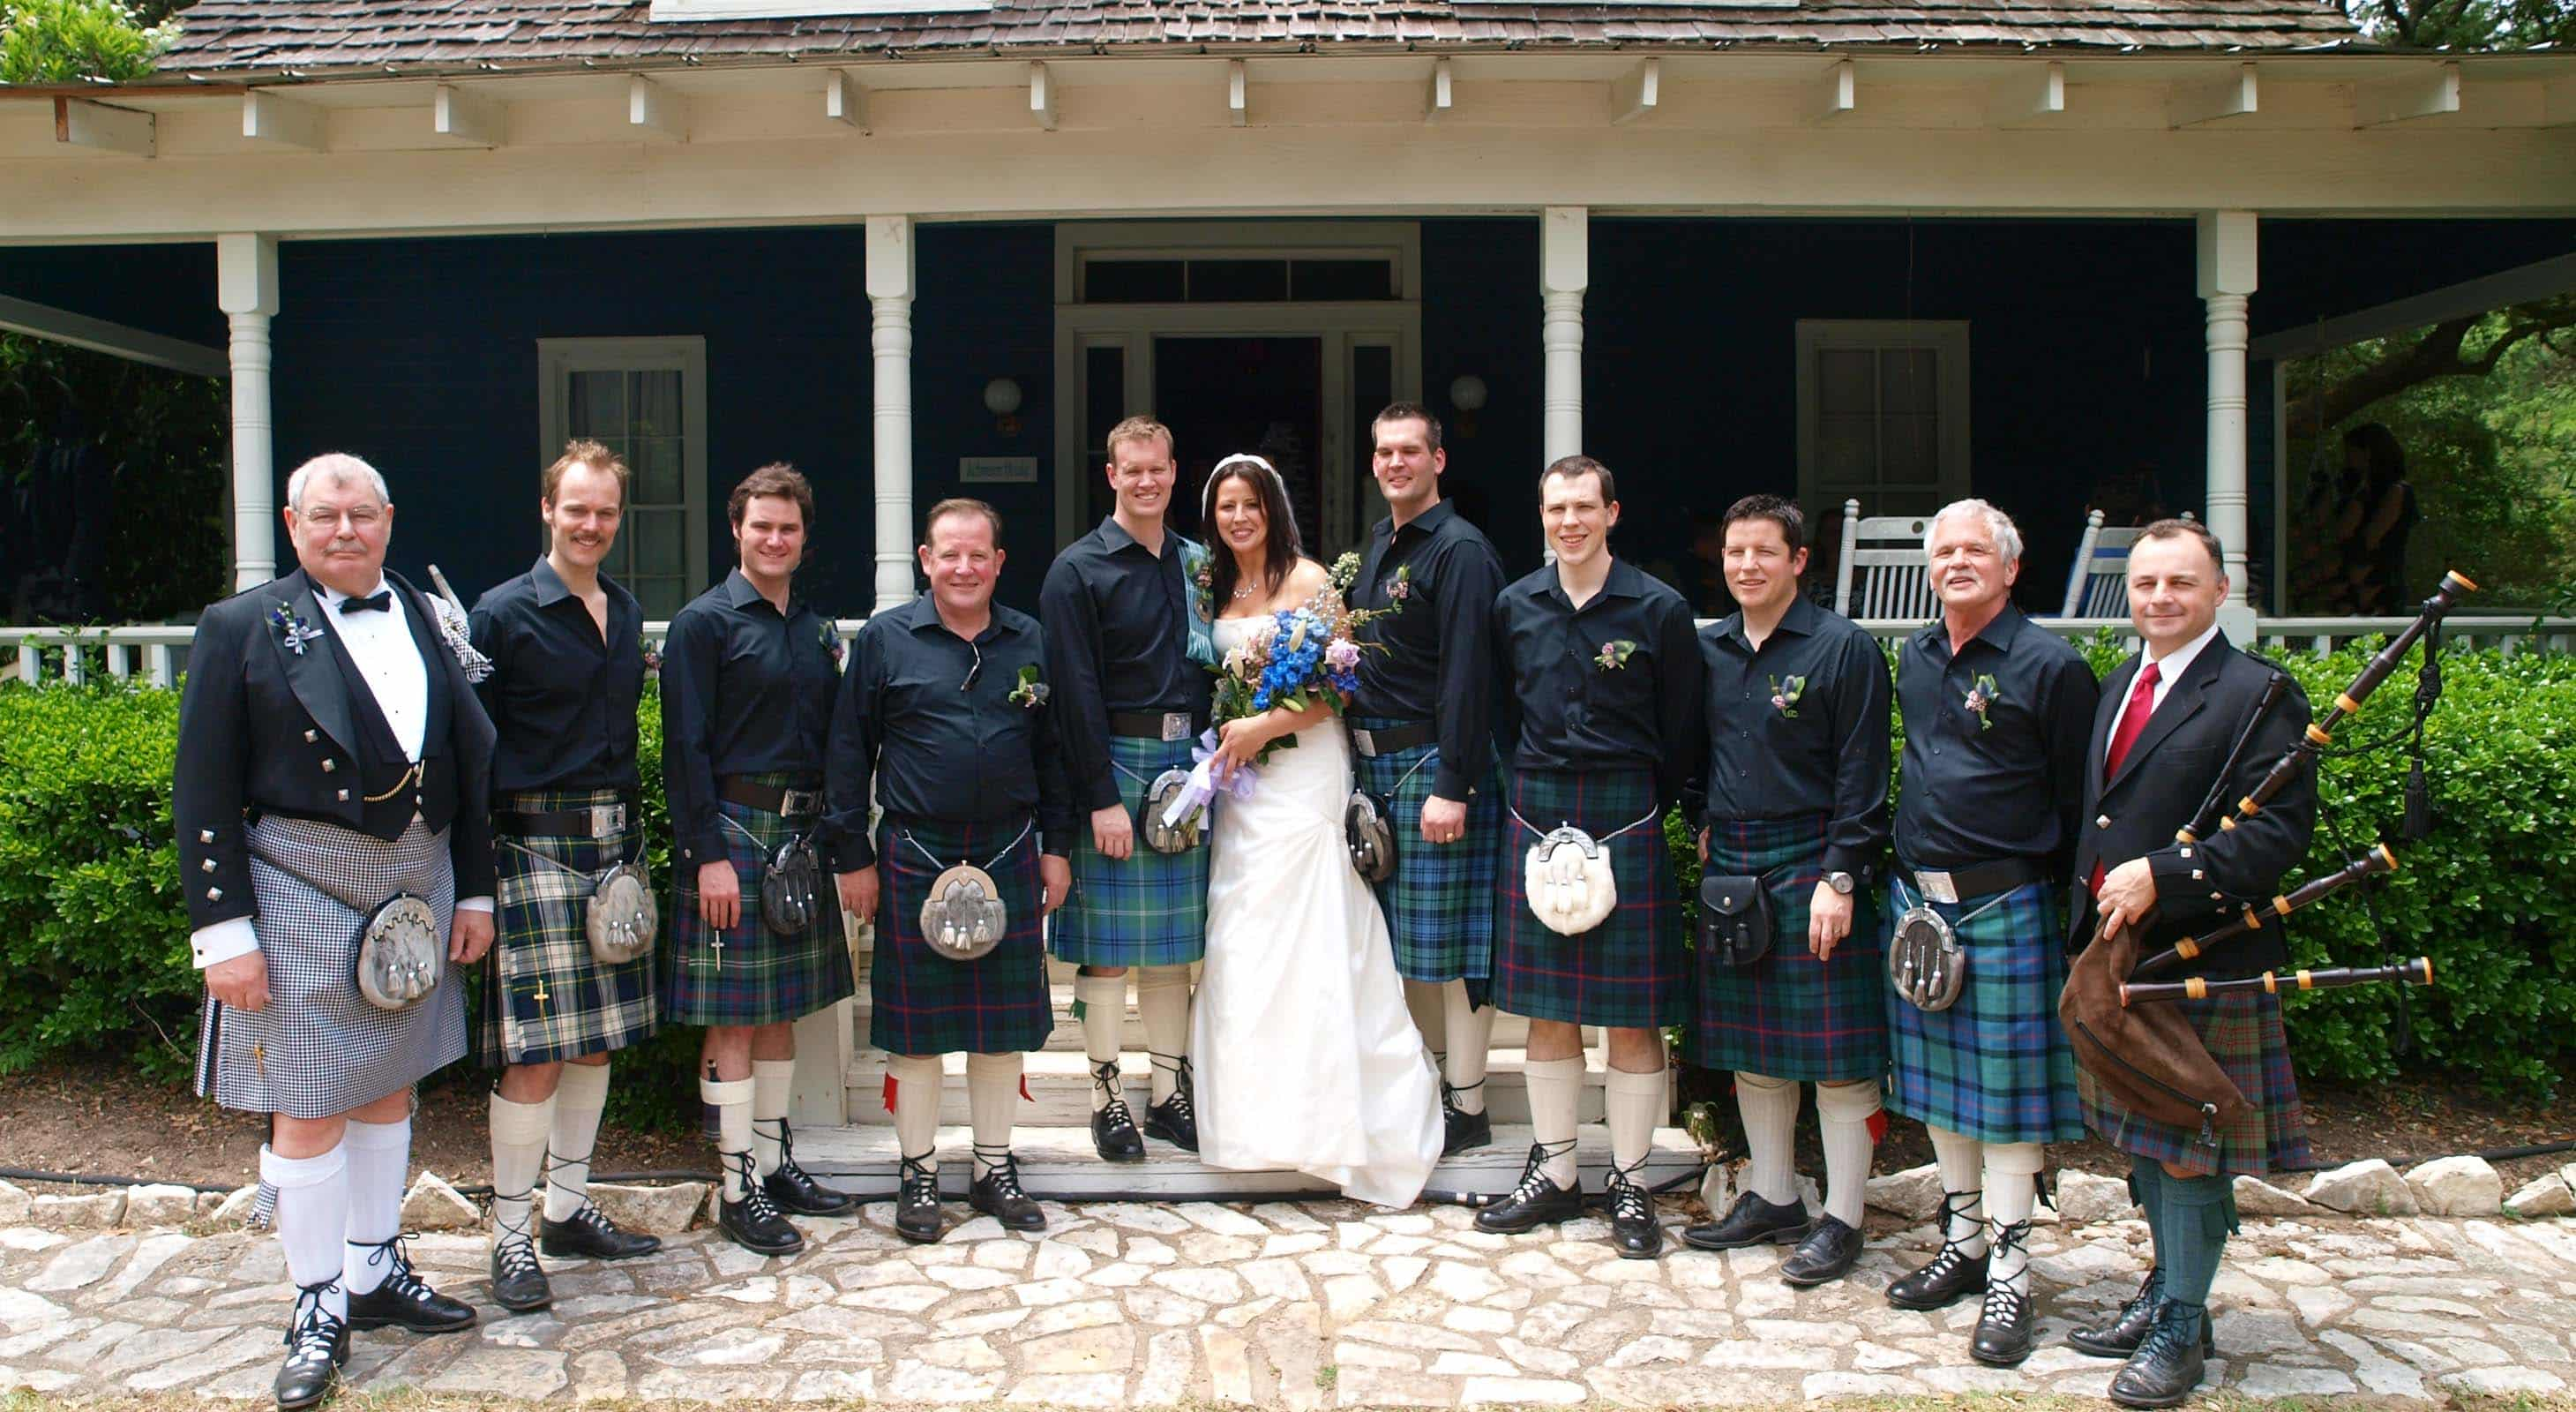 A large wedding party in traditional Scottish attire at BlissWood Ranch